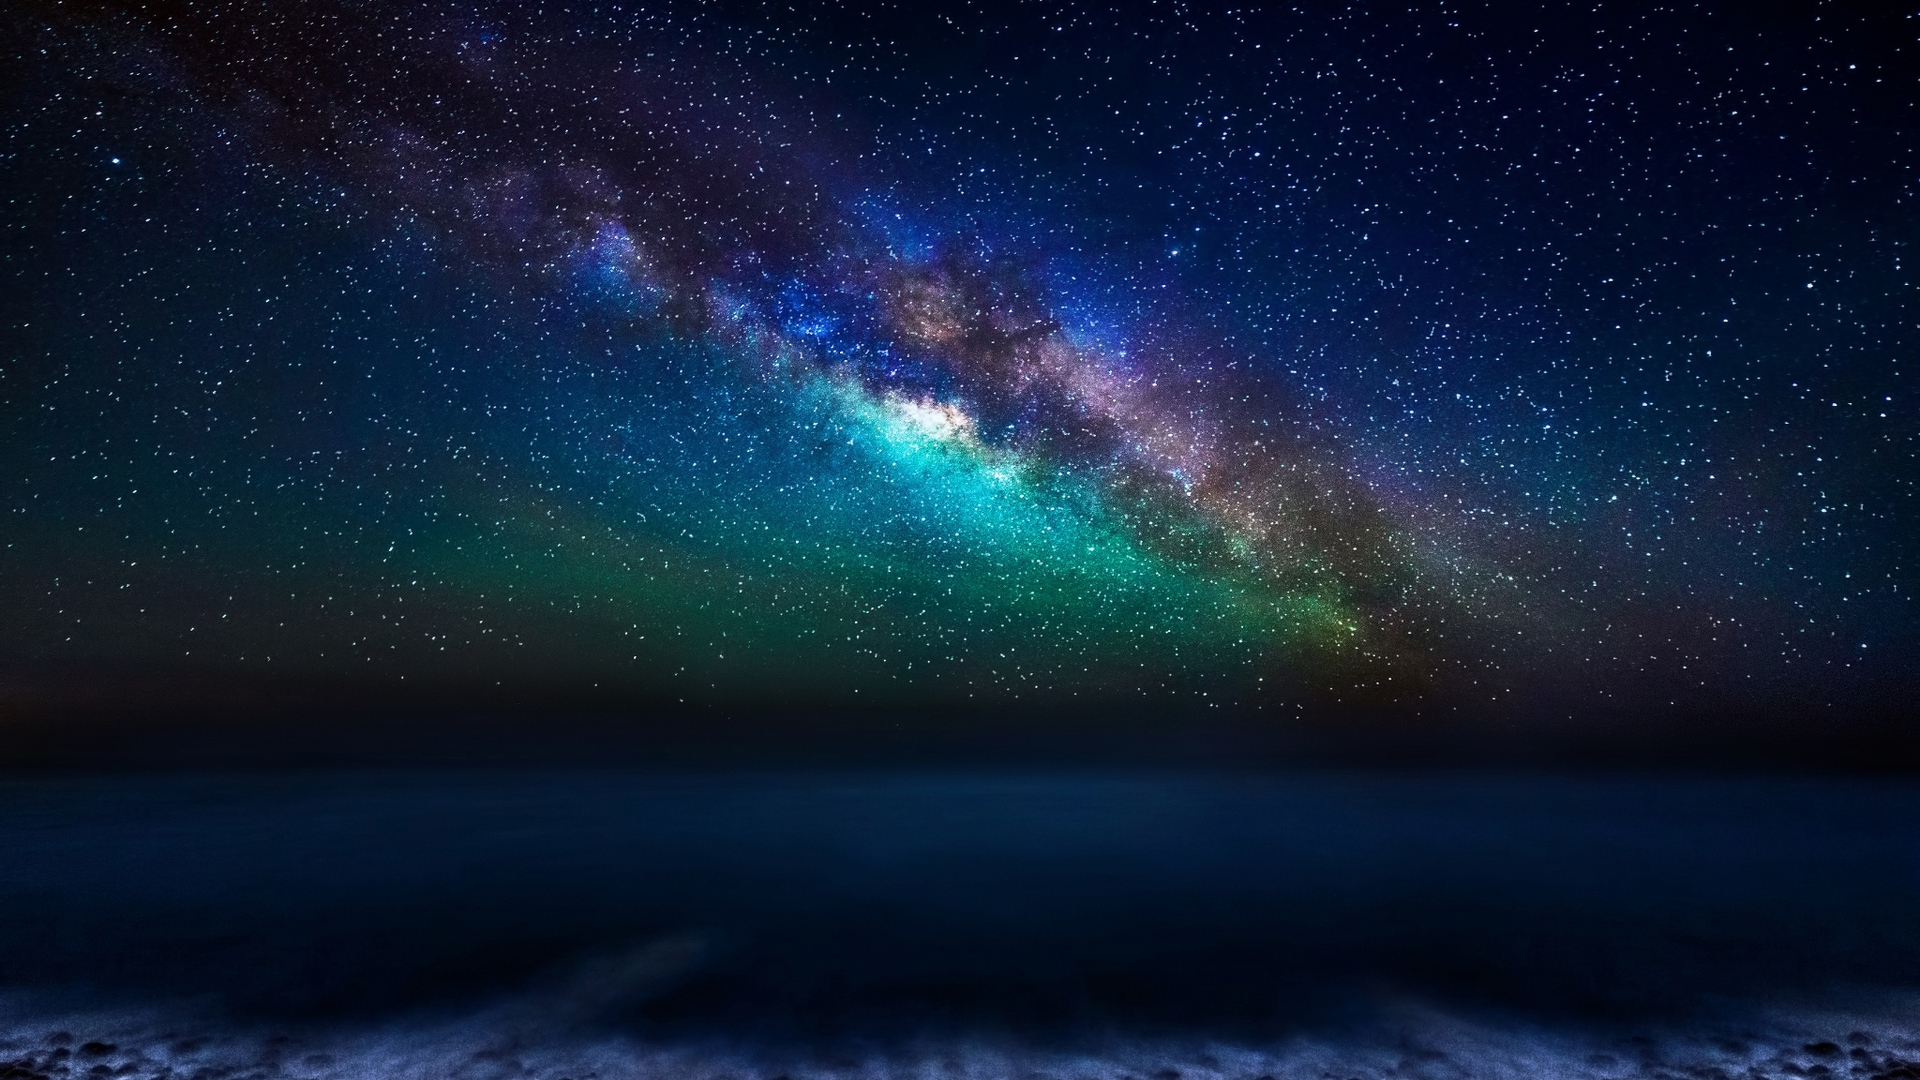 Milky Way Galaxy From The Canary Islands 1920 X 1080 Hdtv